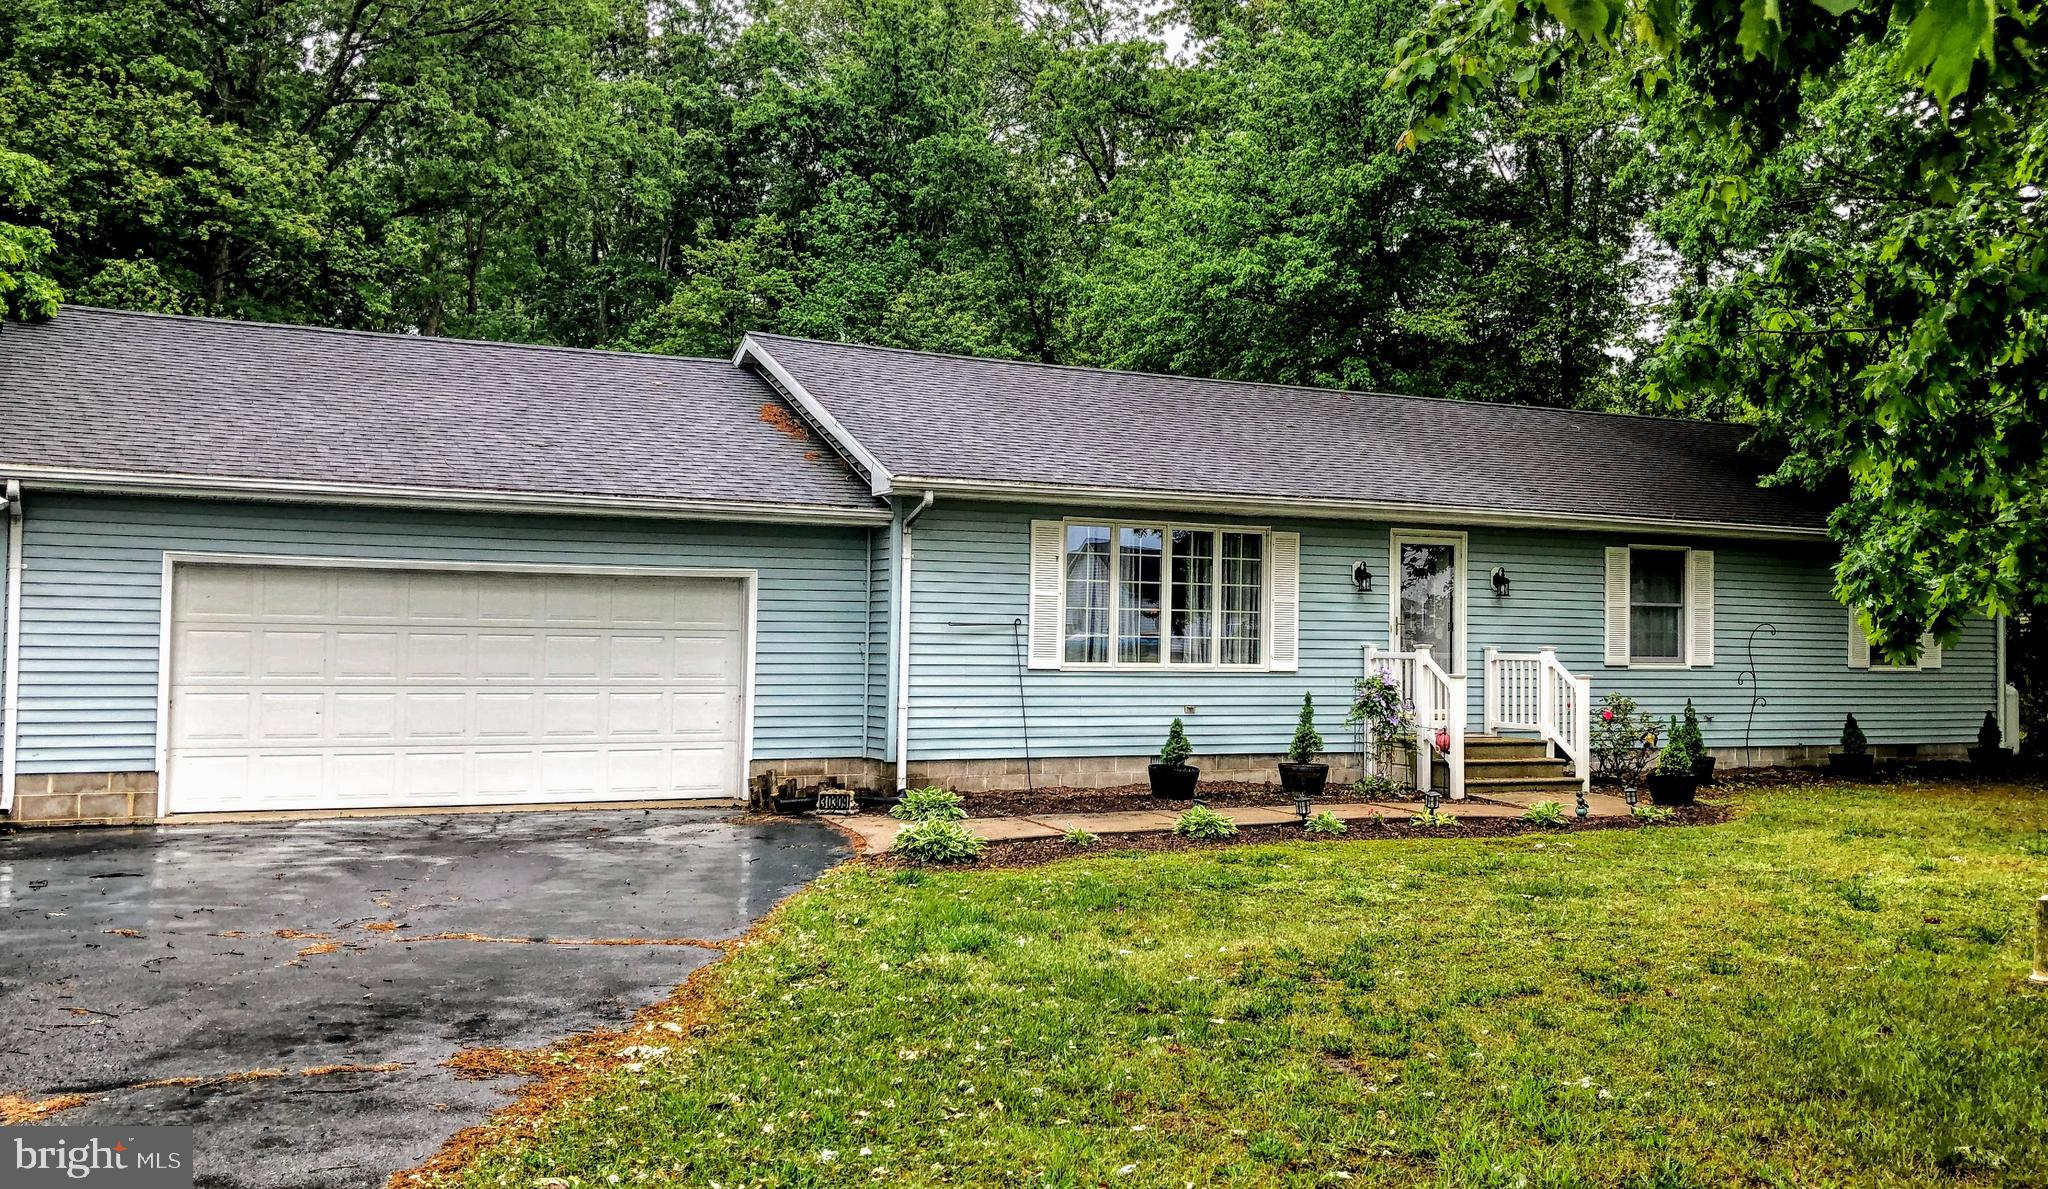 Must see this beautiful, well-maintained home in Millsboro, Sussex County close to beaches and shopp